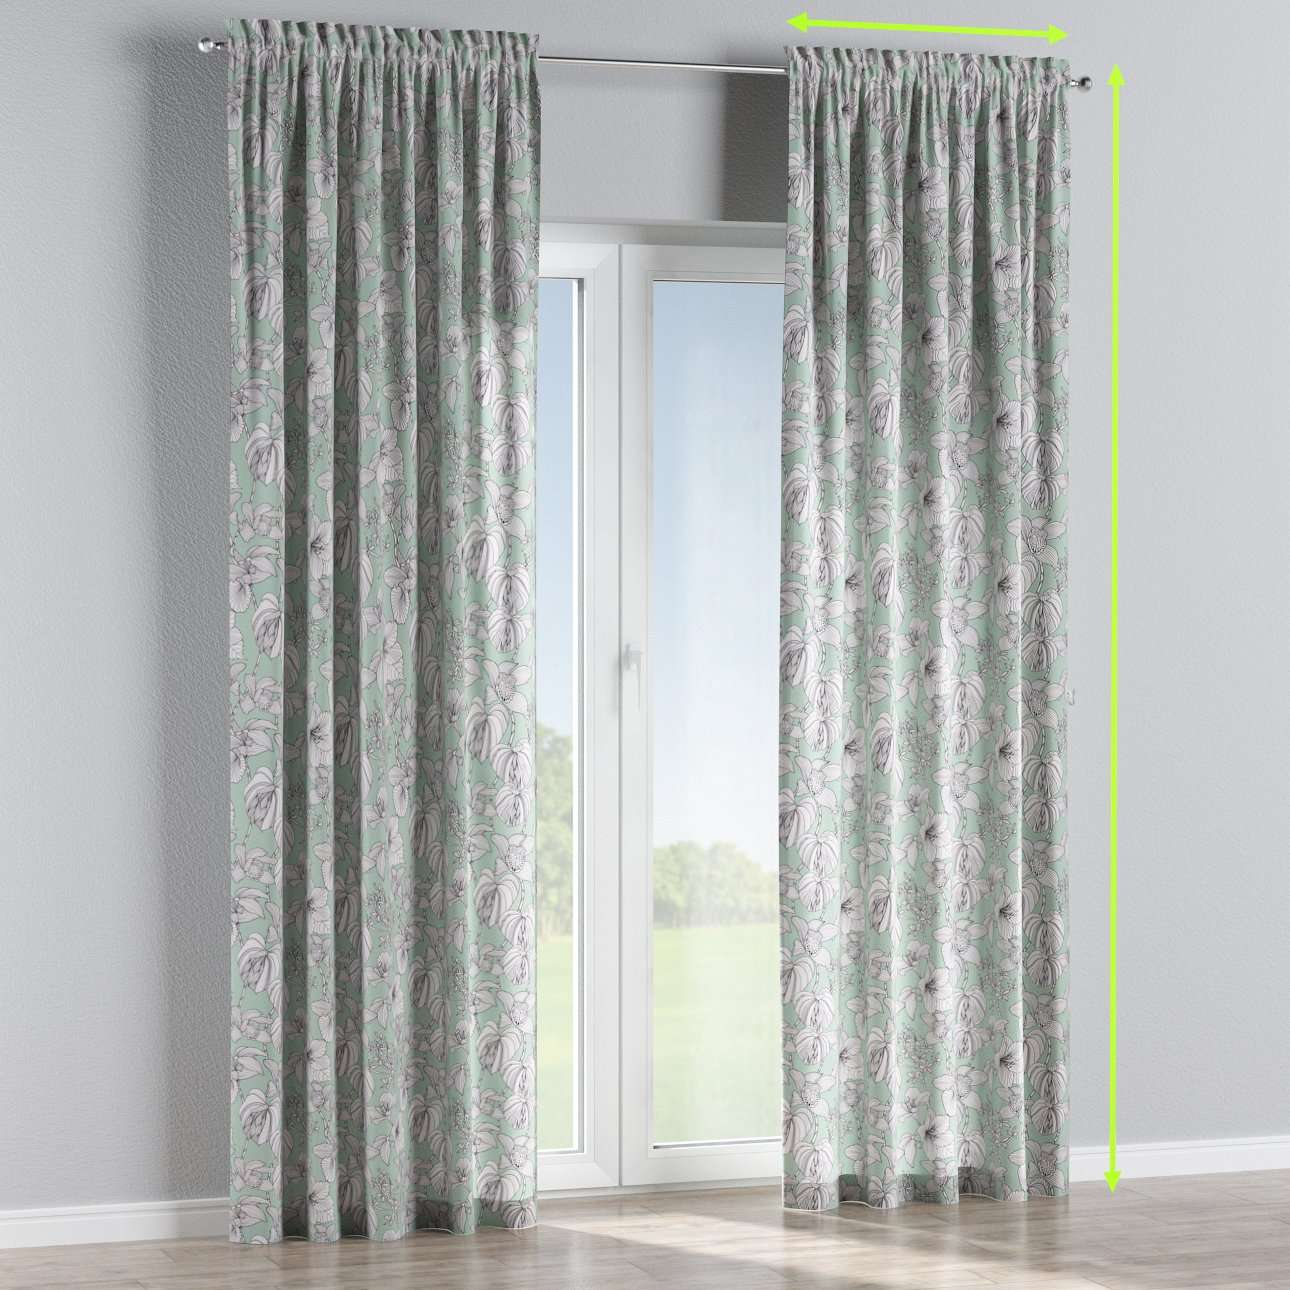 Slot and frill curtains in collection Brooklyn, fabric: 137-76